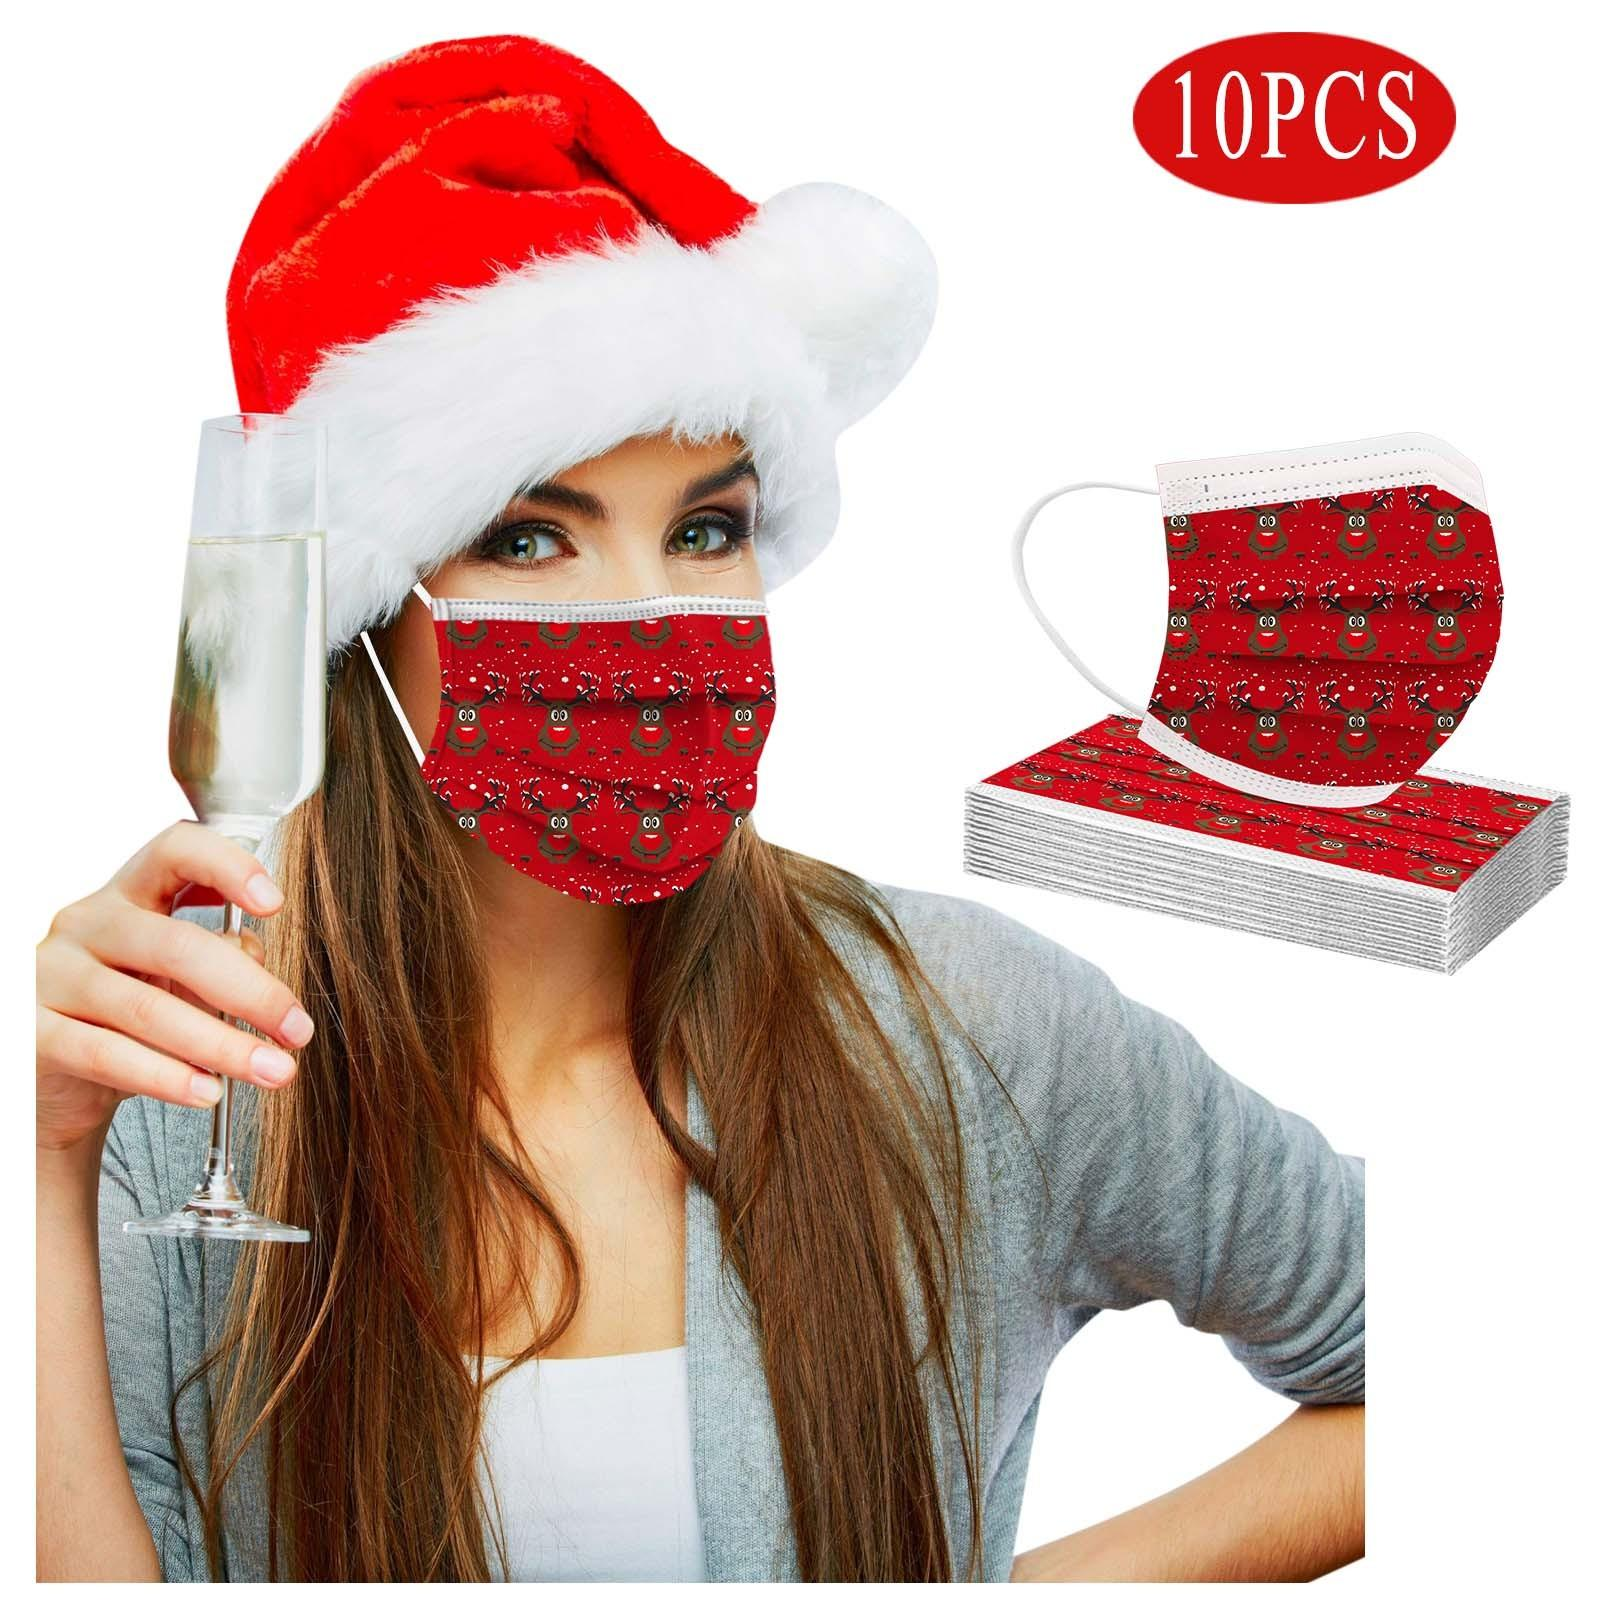 10/Adult Christmas Mask Headband Bandana Disposable Face Mask Navidad Natal Mascarillas Desechables Masque Jetable Adulte jllWUN